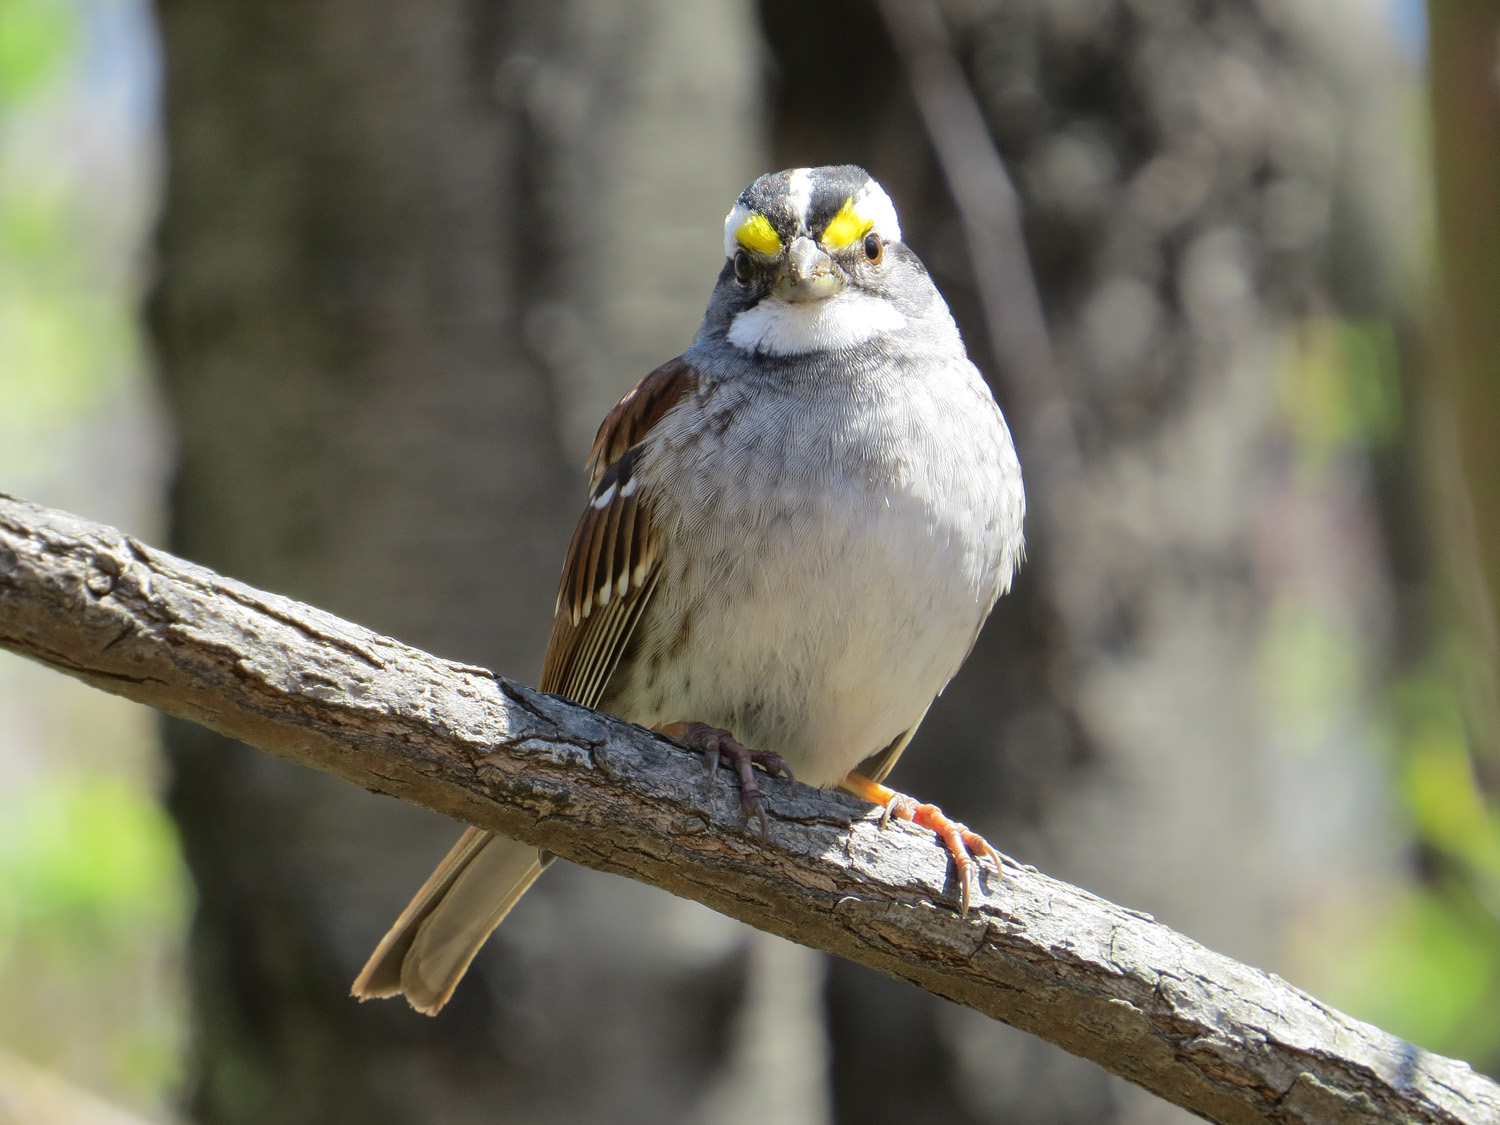 White-throated sparrow, April 15, 2016, Central Park